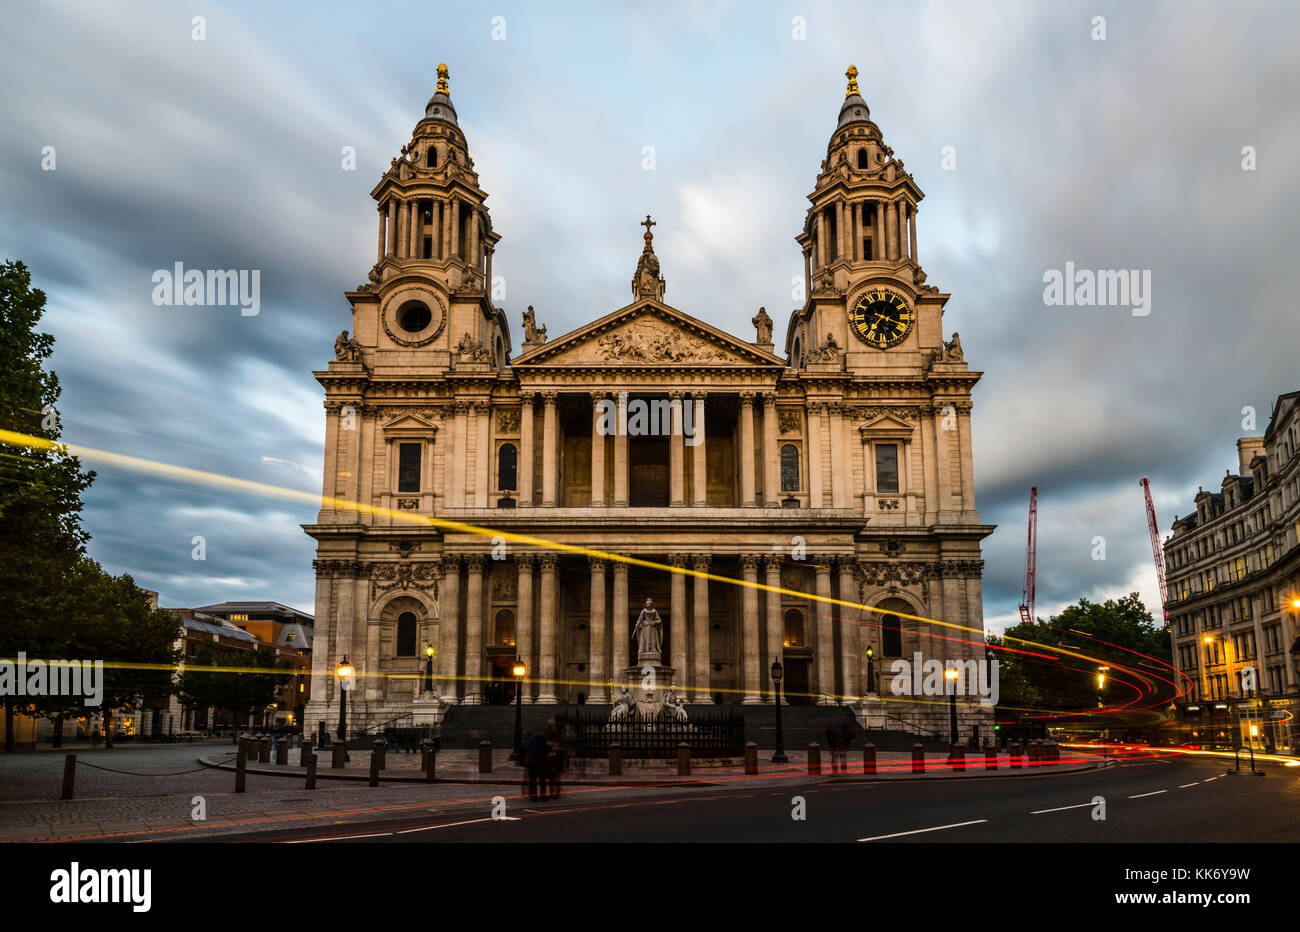 Car lights around sunset at St Paul's Cathedral, London, UK - Stock Image